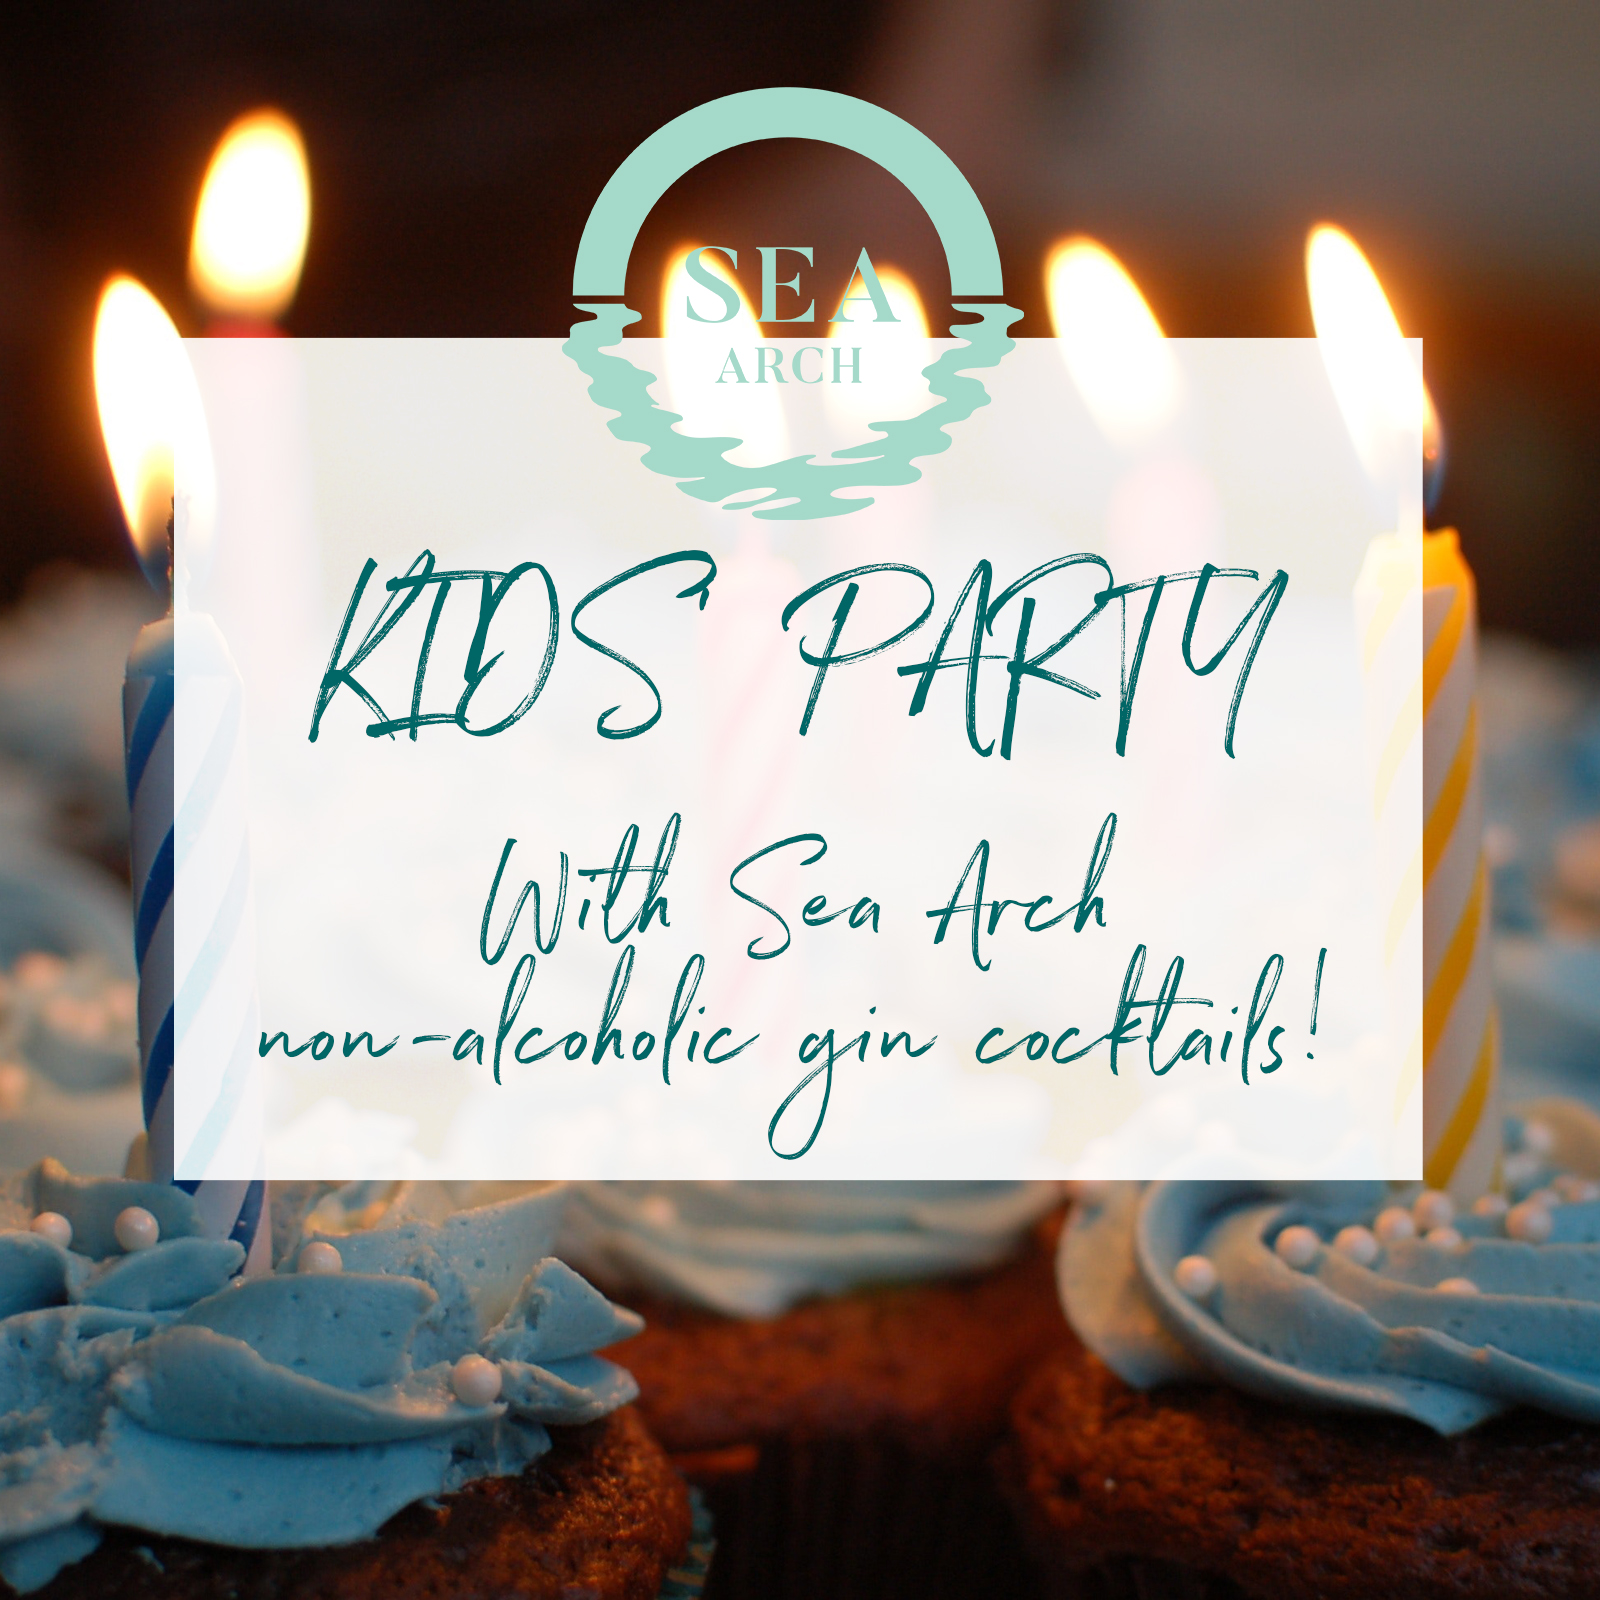 Kids party with Sea Arch non-alcoholic G&T